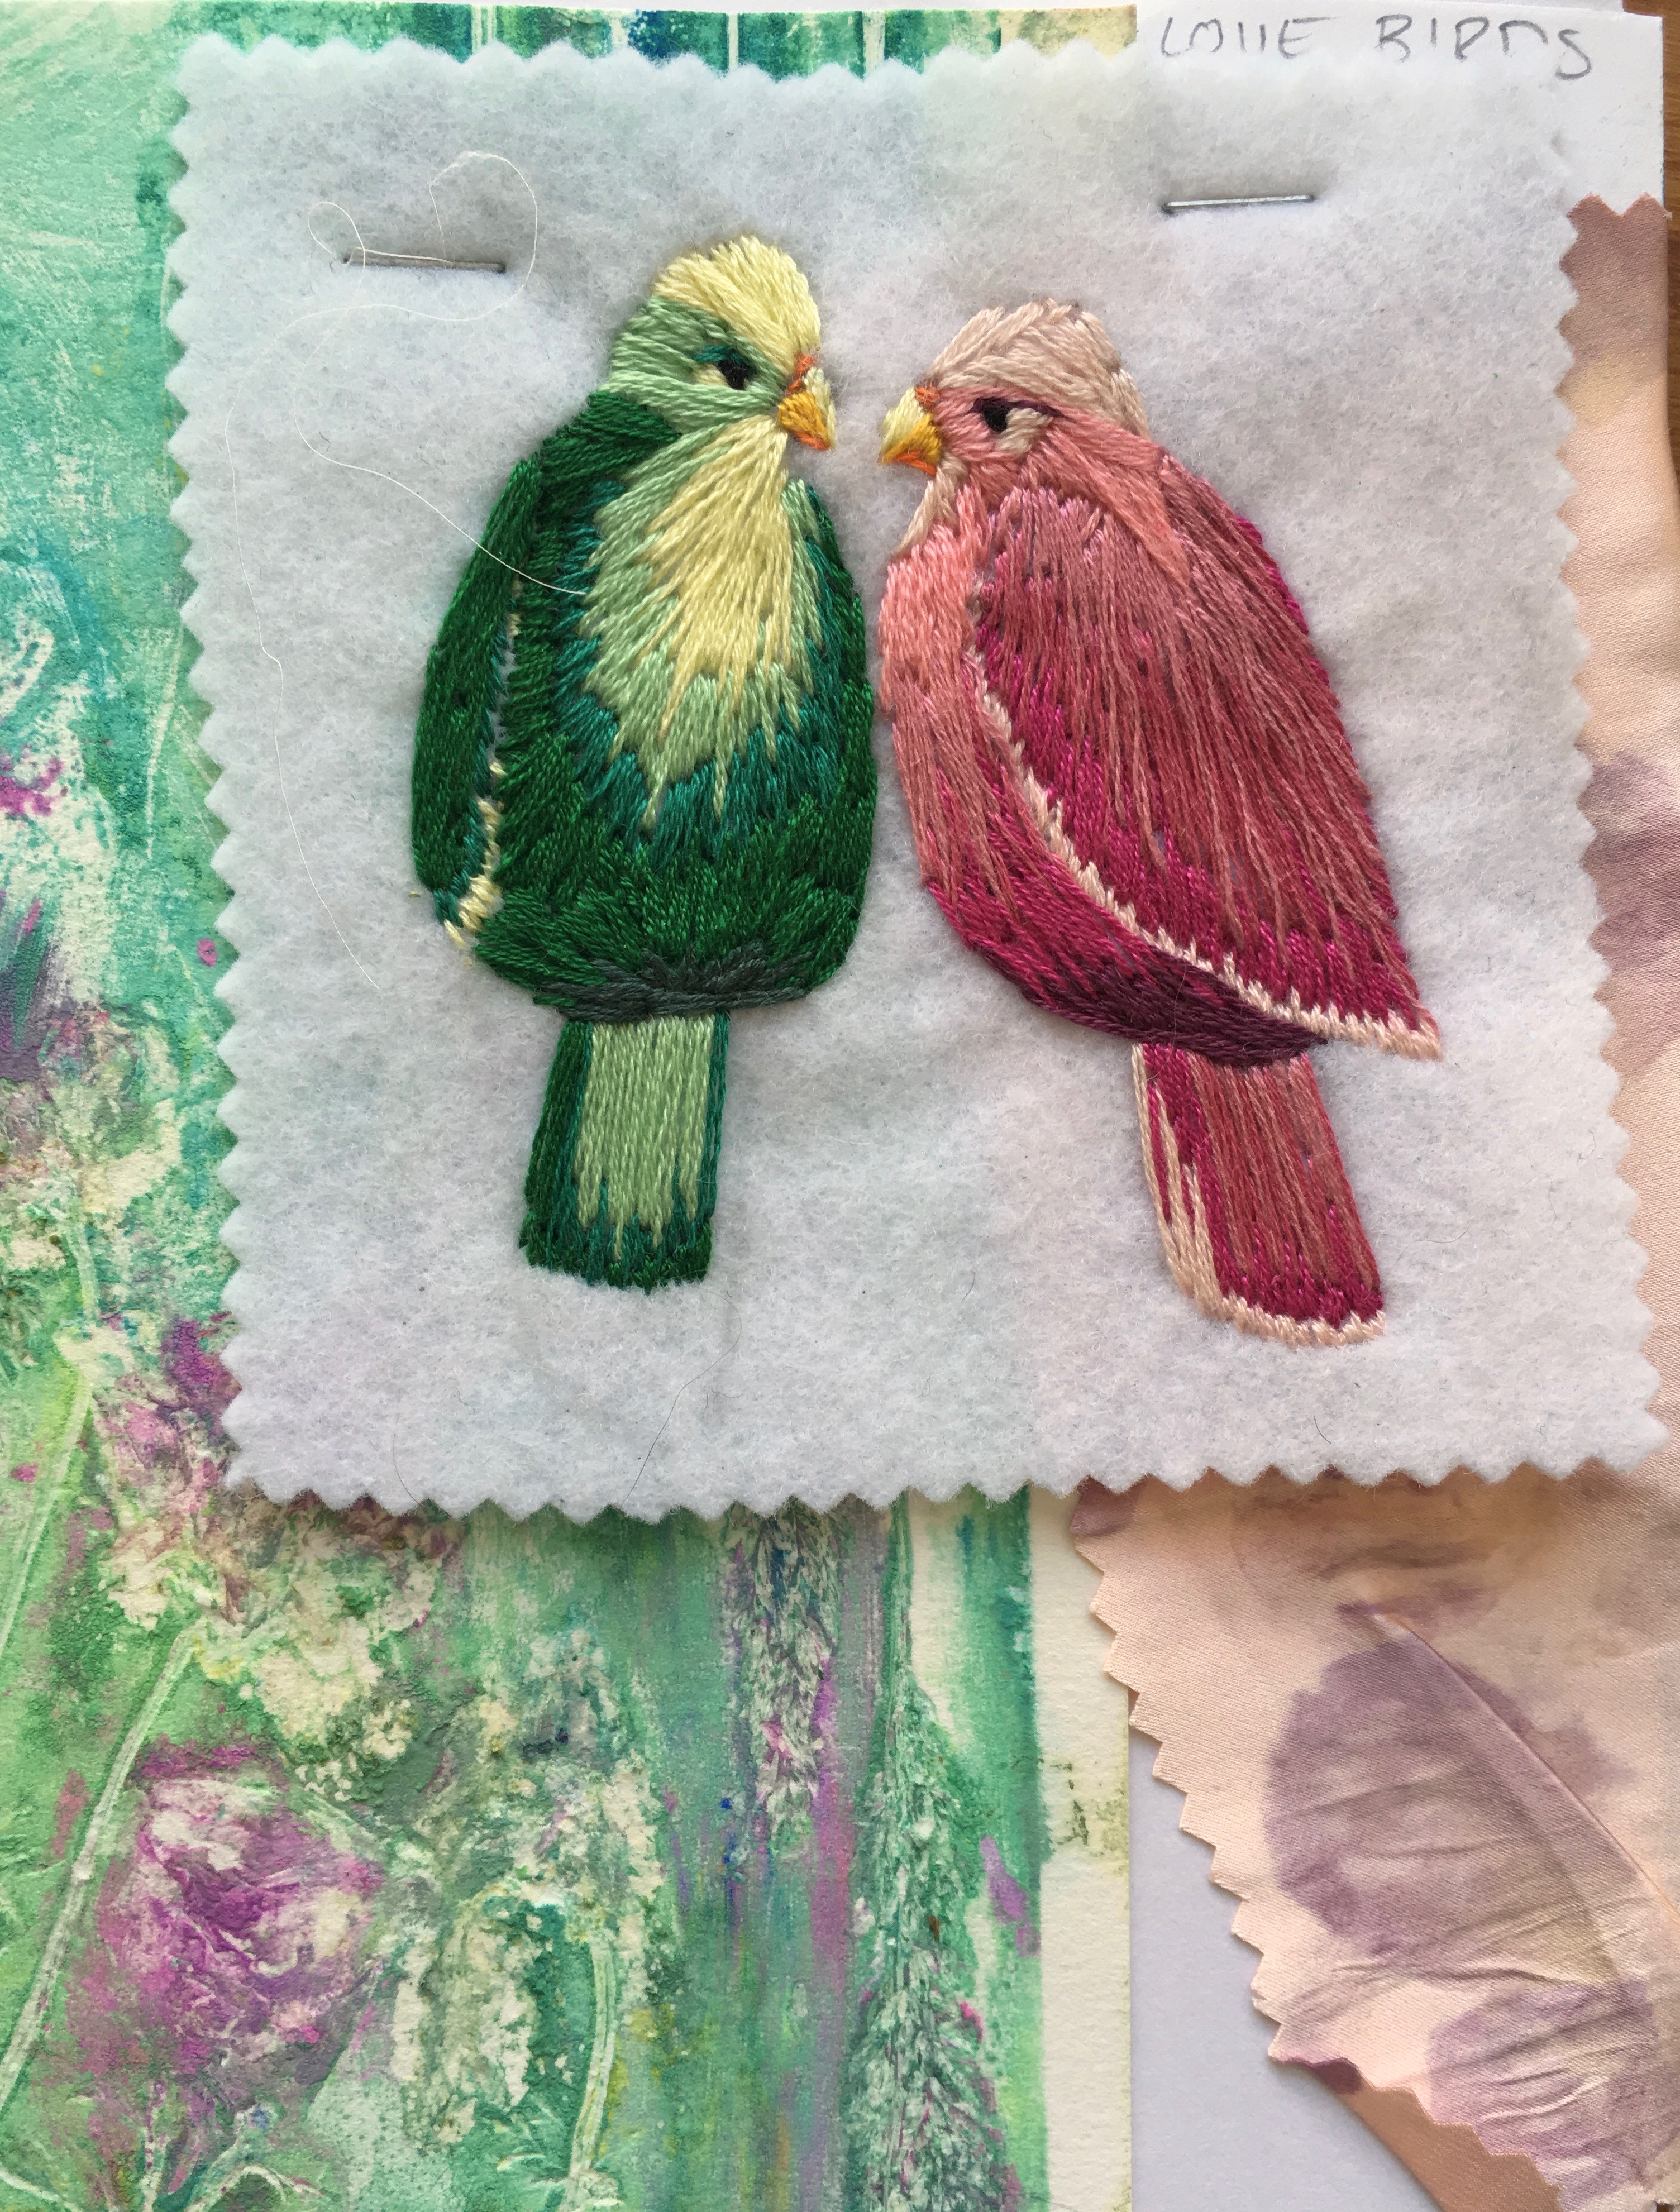 Embroidered love birds